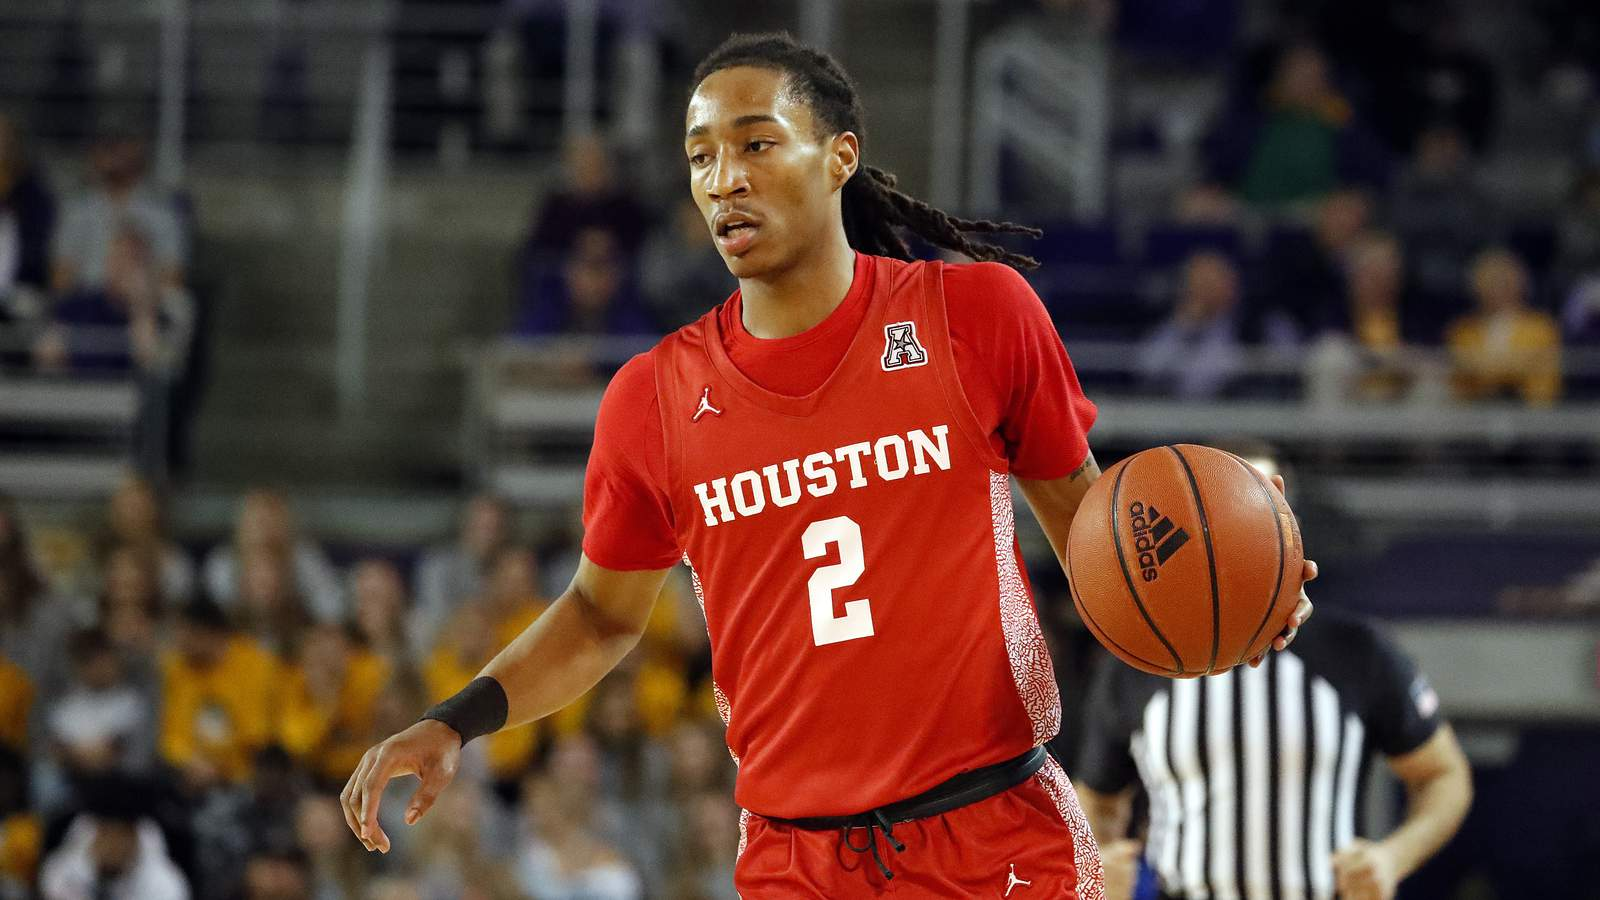 UNC Basketball Inquires About Houston PG Transfer Caleb Mills